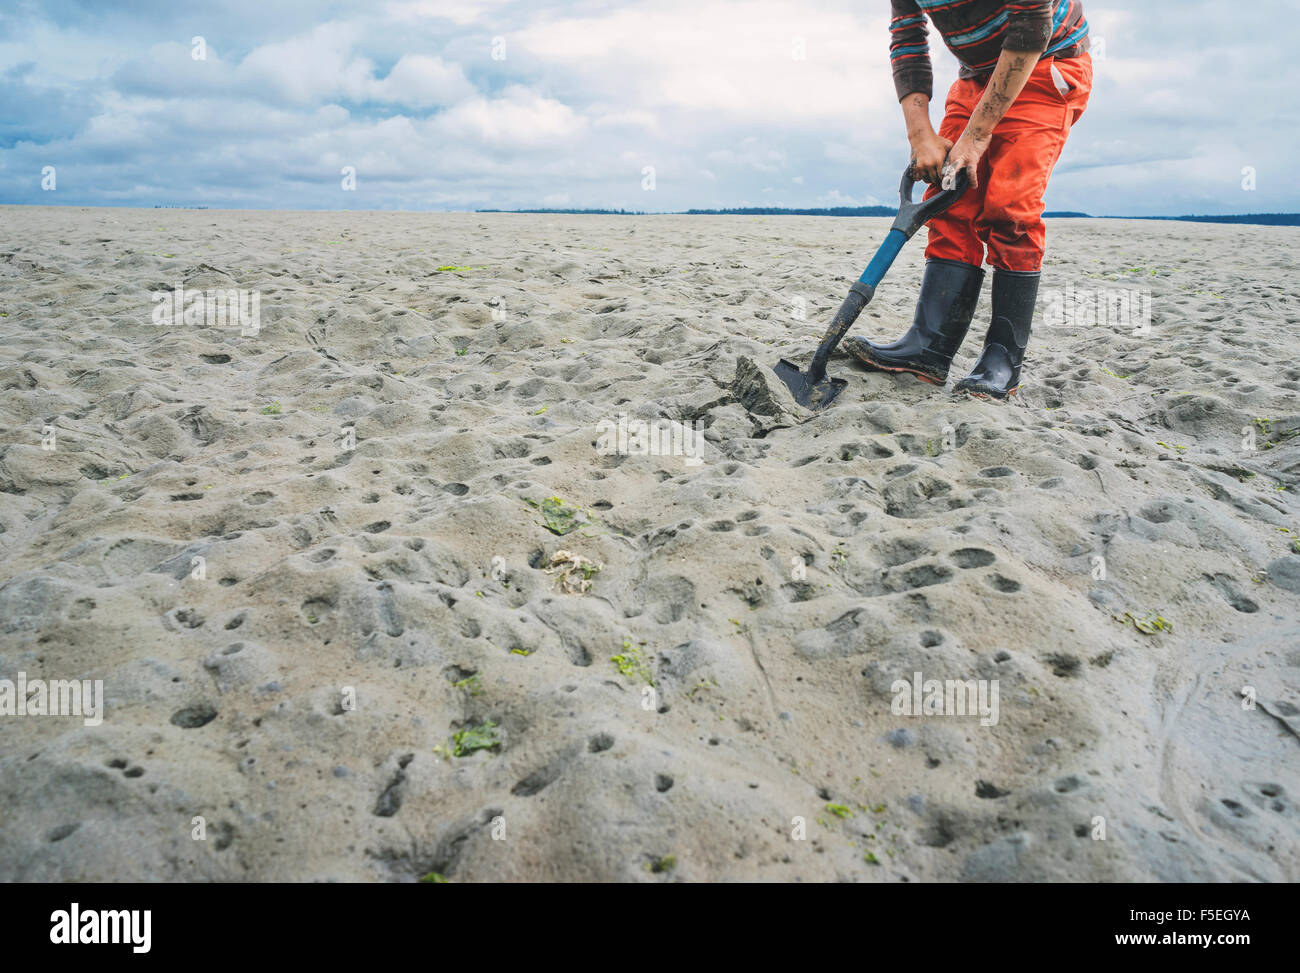 Boy digging for clams on sandy beach - Stock Image